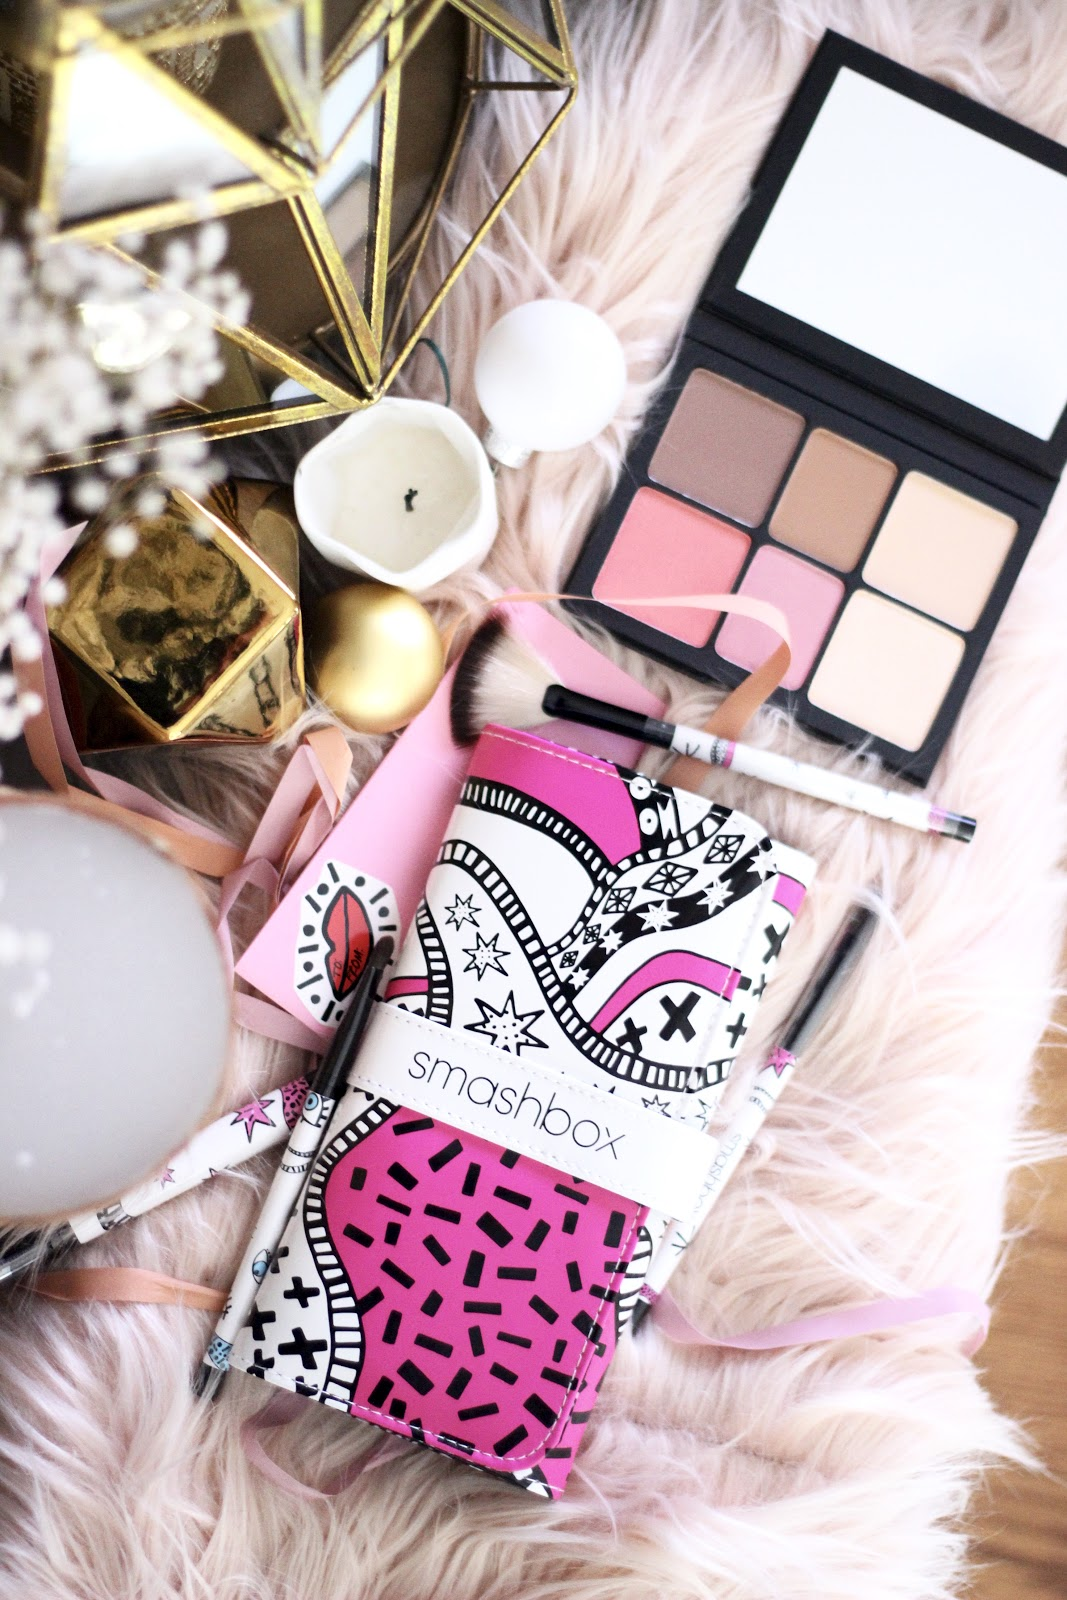 Holiday 2017 Gift Guide - Make up & Skincare Sets-- Benefit, Smashbox, NARS, Biotherm, NYX, CLEAN, Pixi